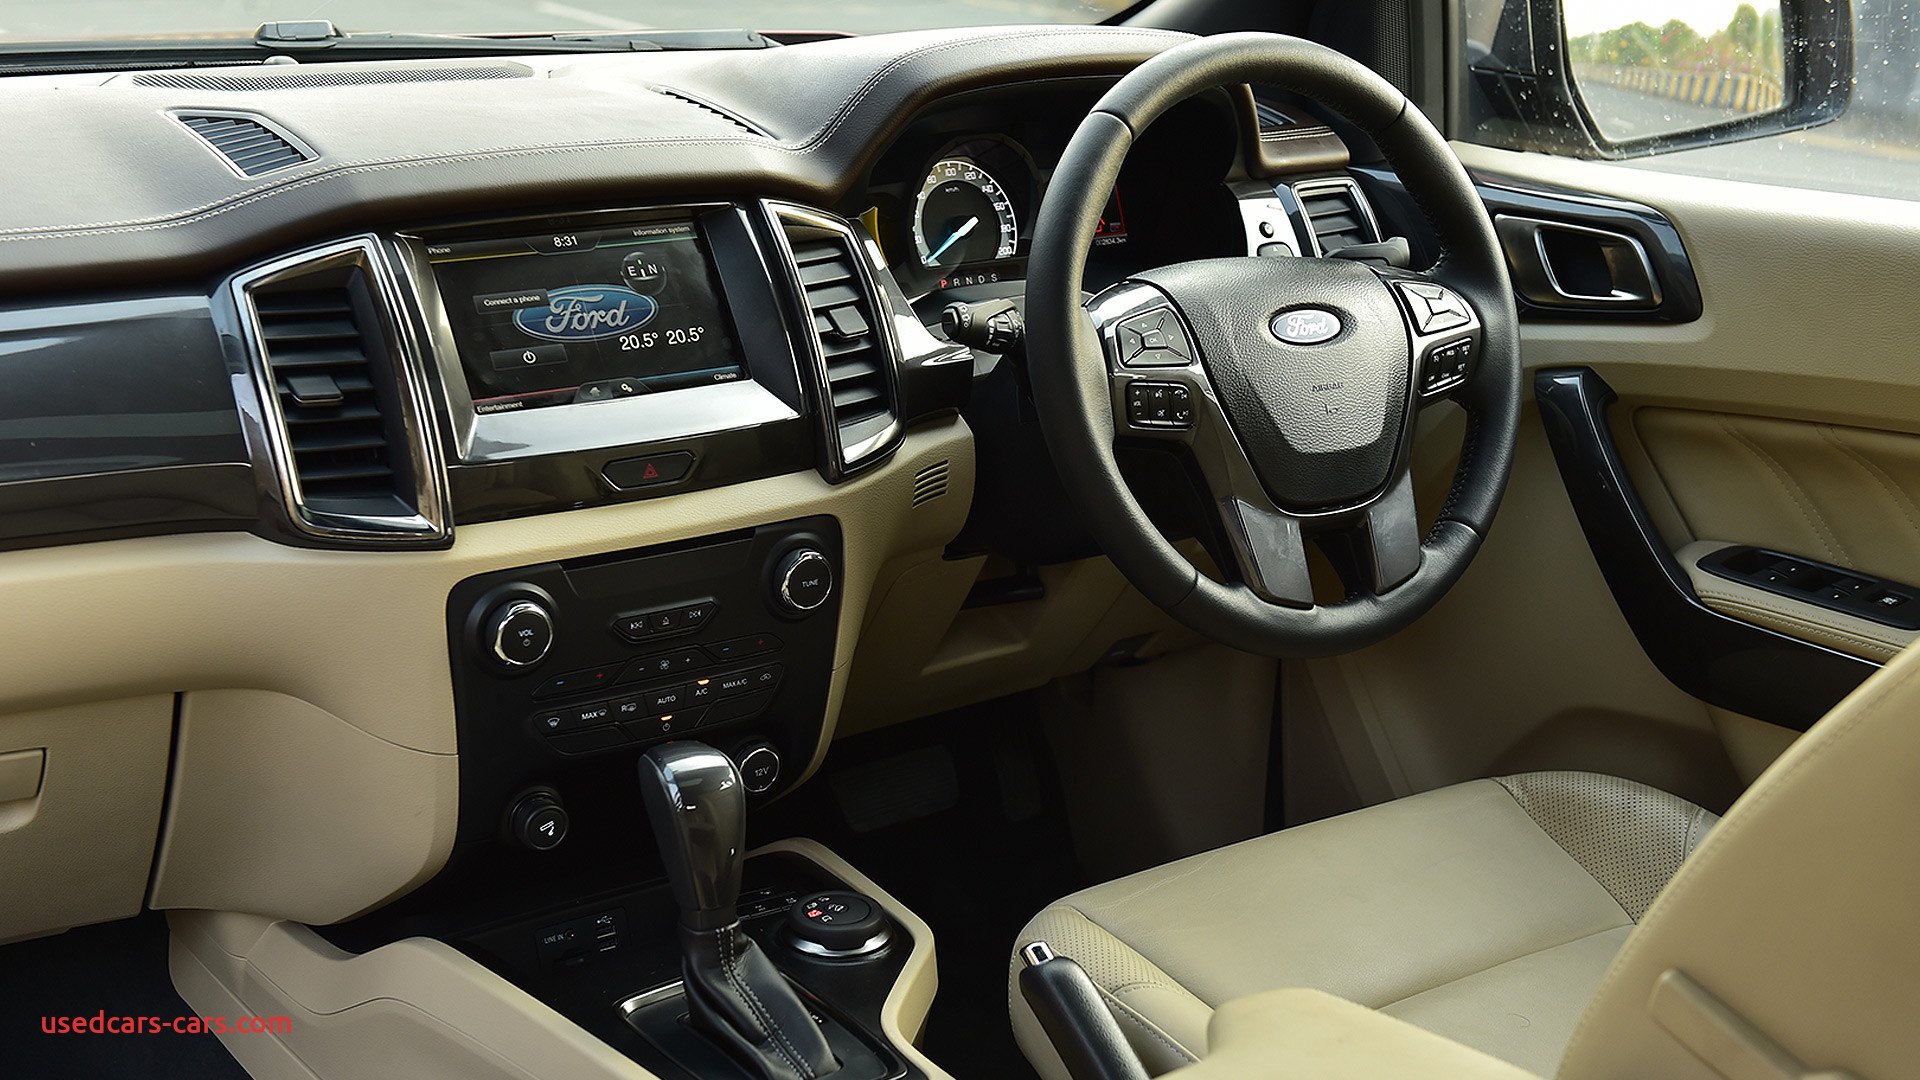 Ford Endeavour 2020 On Road Price Fresh ford Endeavour 2020 Price Mileage Reviews Specification